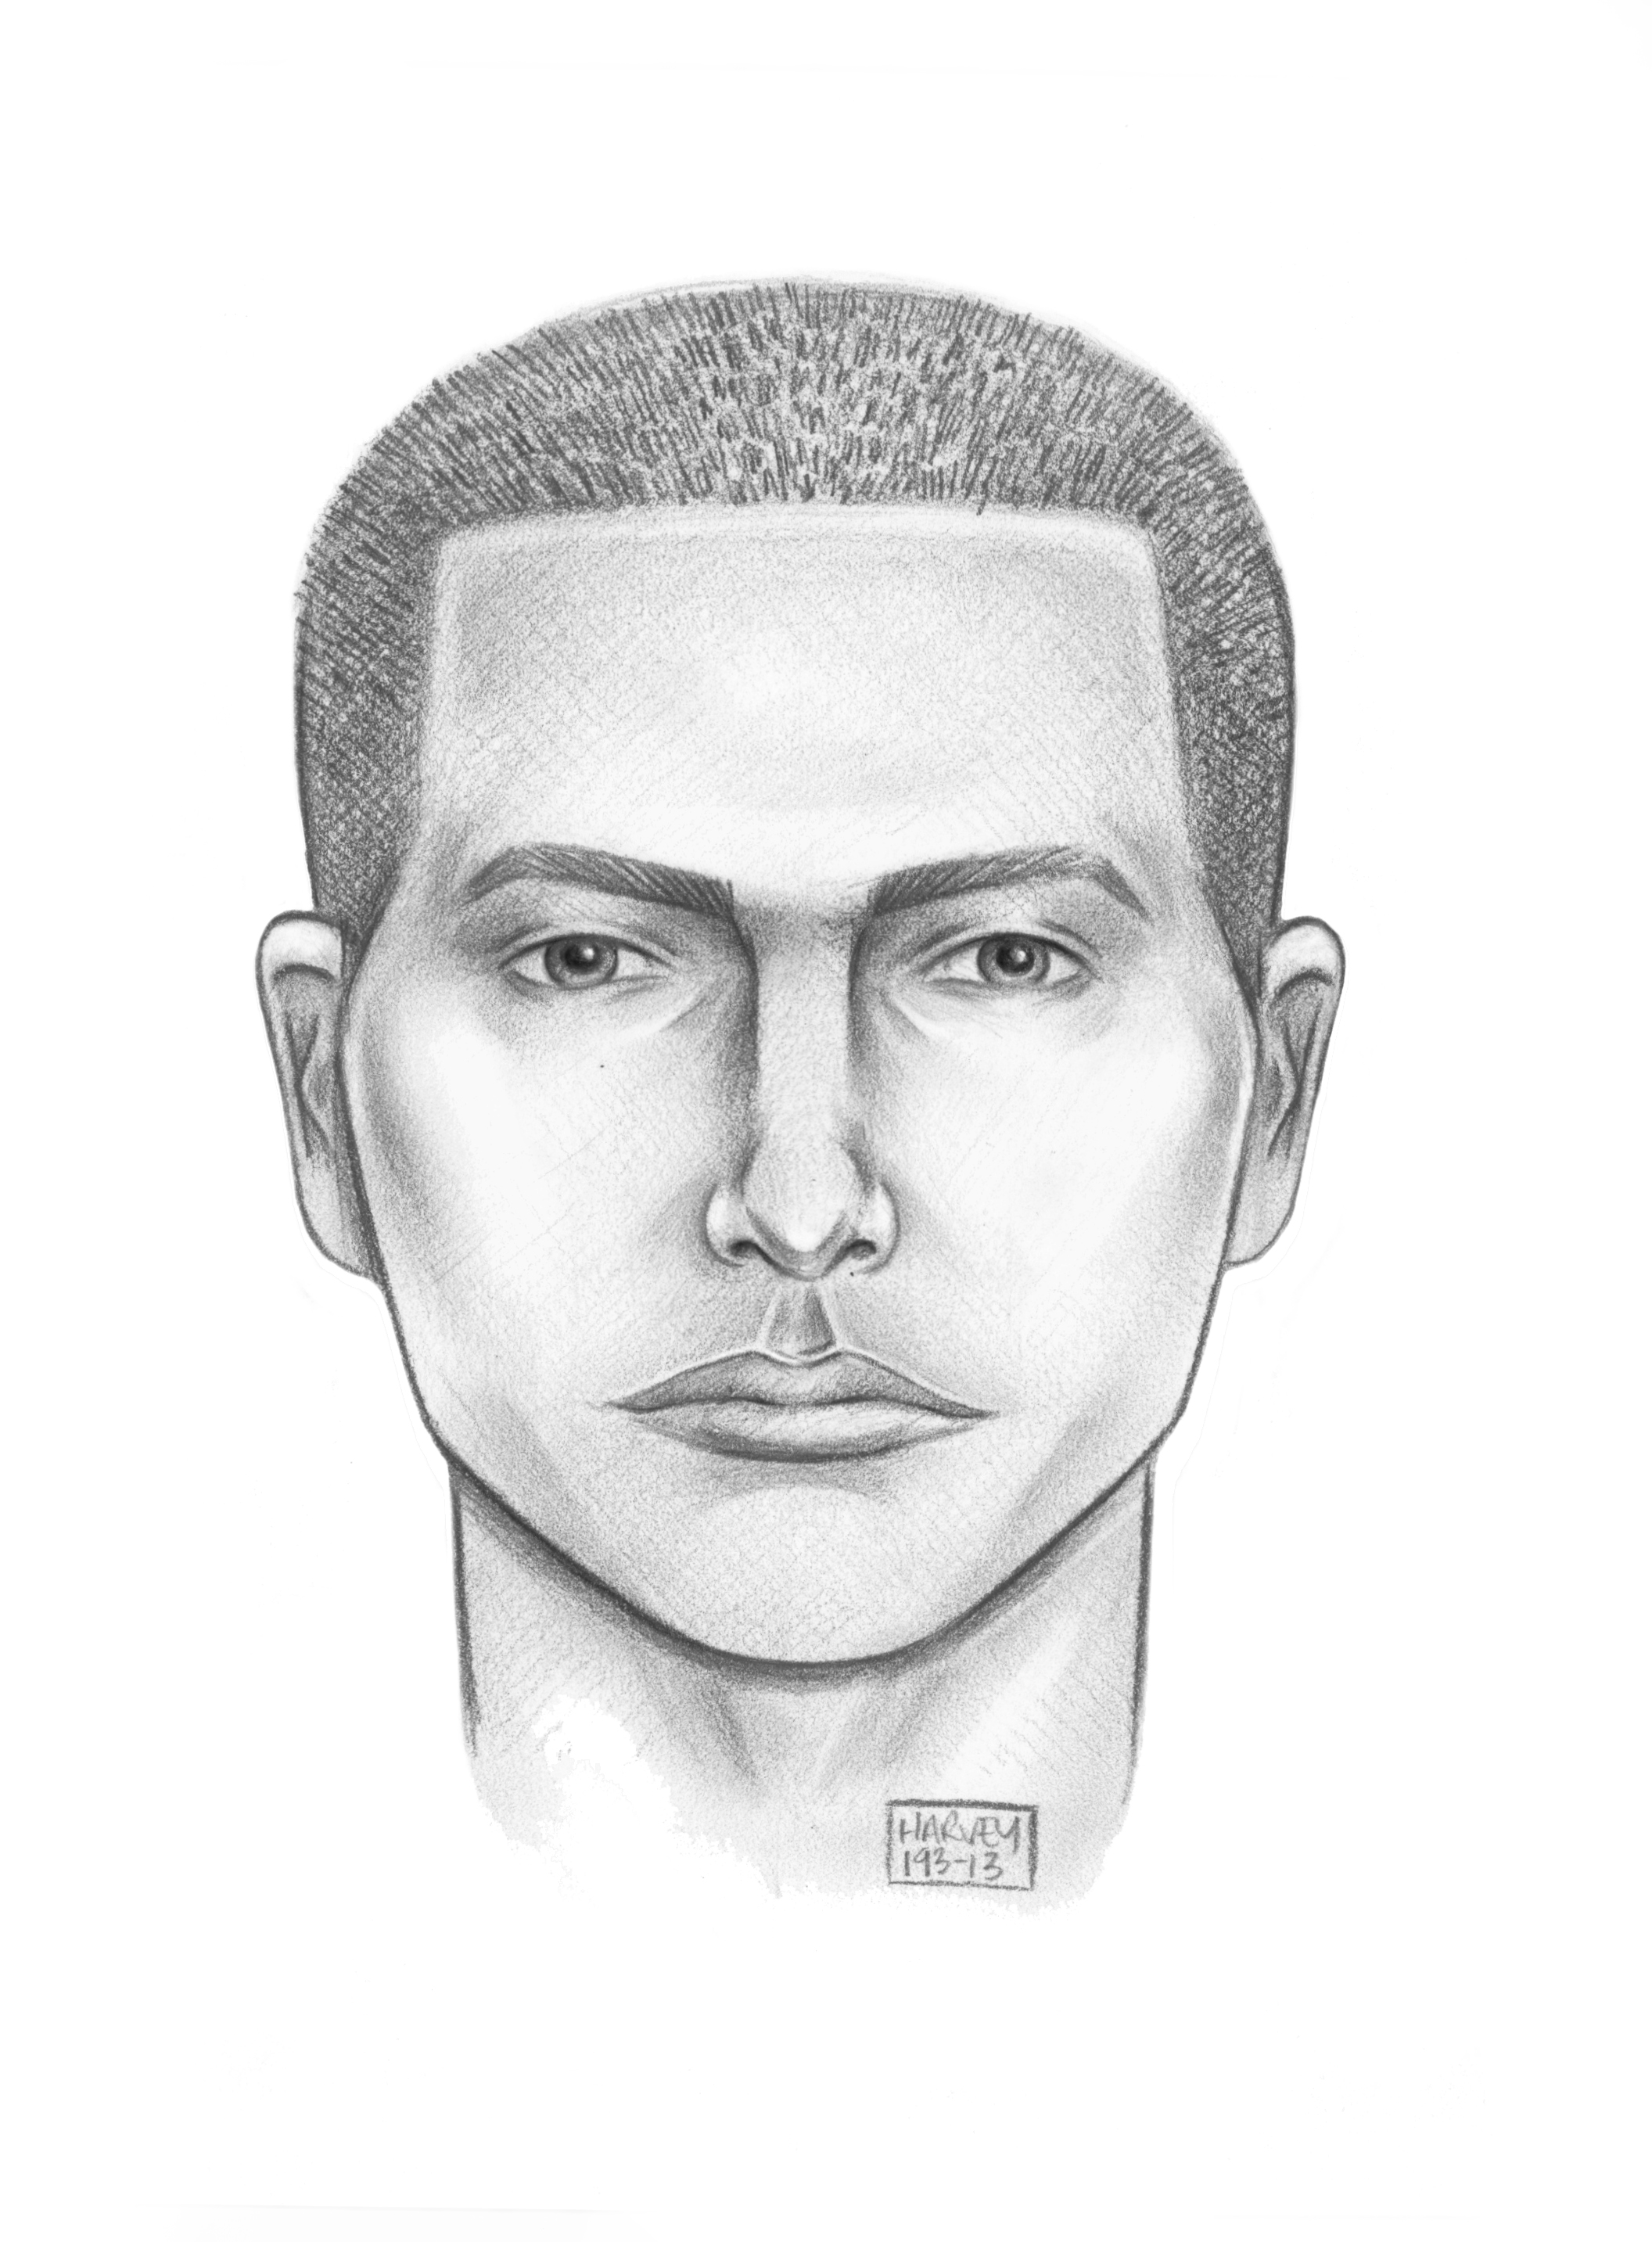 NYPD looking for attempted rape suspect